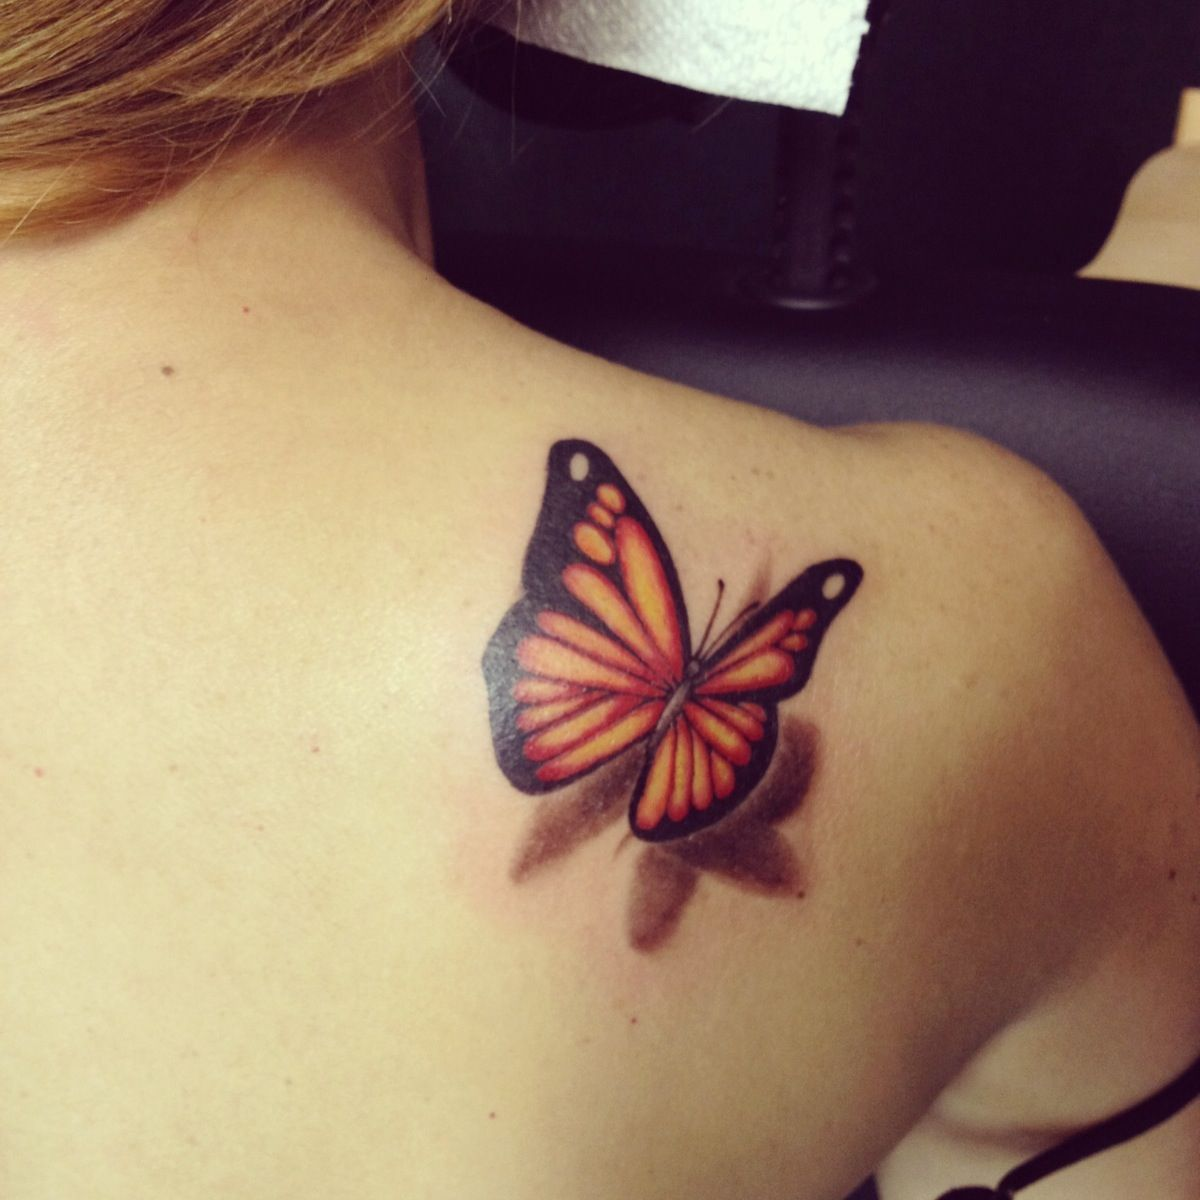 The Tattoo I Want In Memory Of Kaylie.. With A Colorful